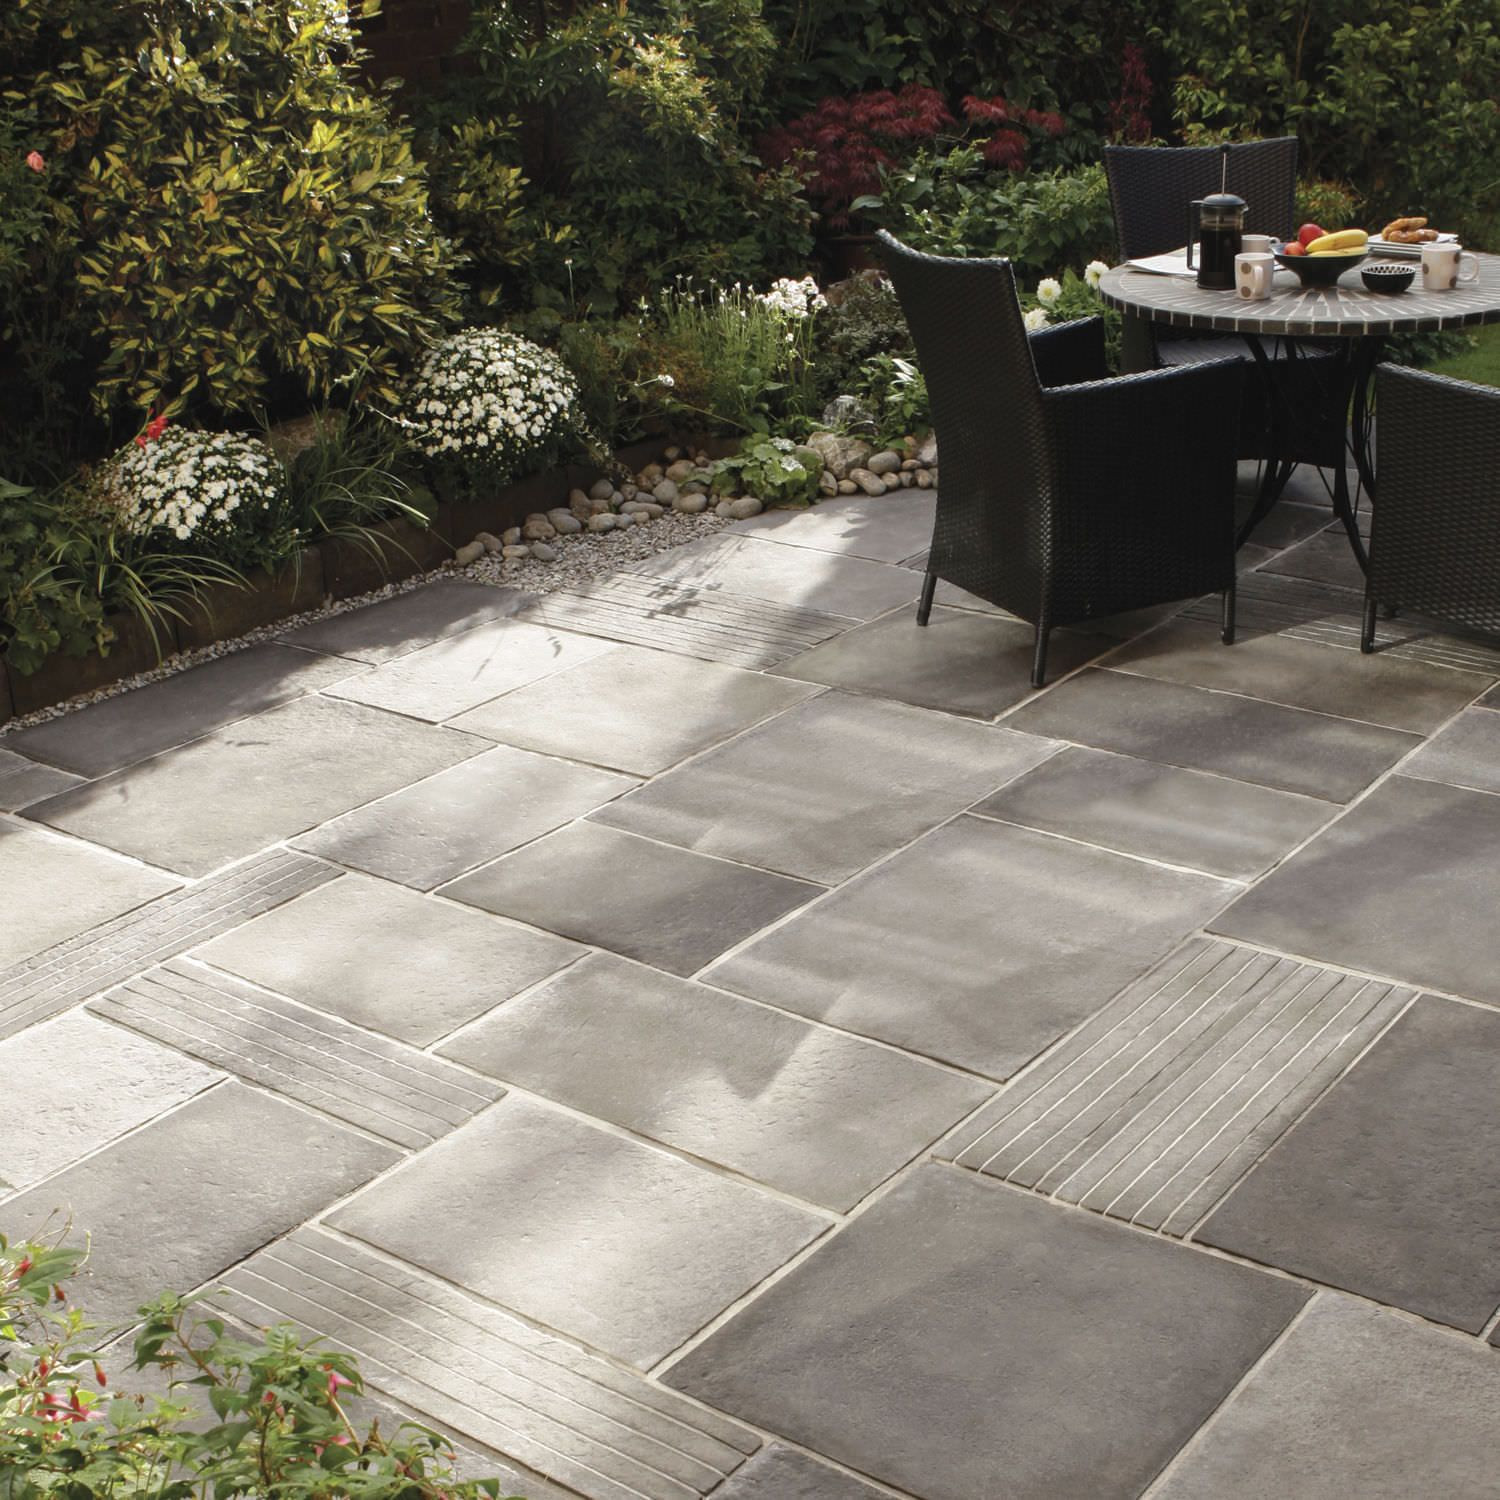 Best ideas about Outdoor Patio Tile . Save or Pin Engineered stone paving tile for outdoor floors Now.